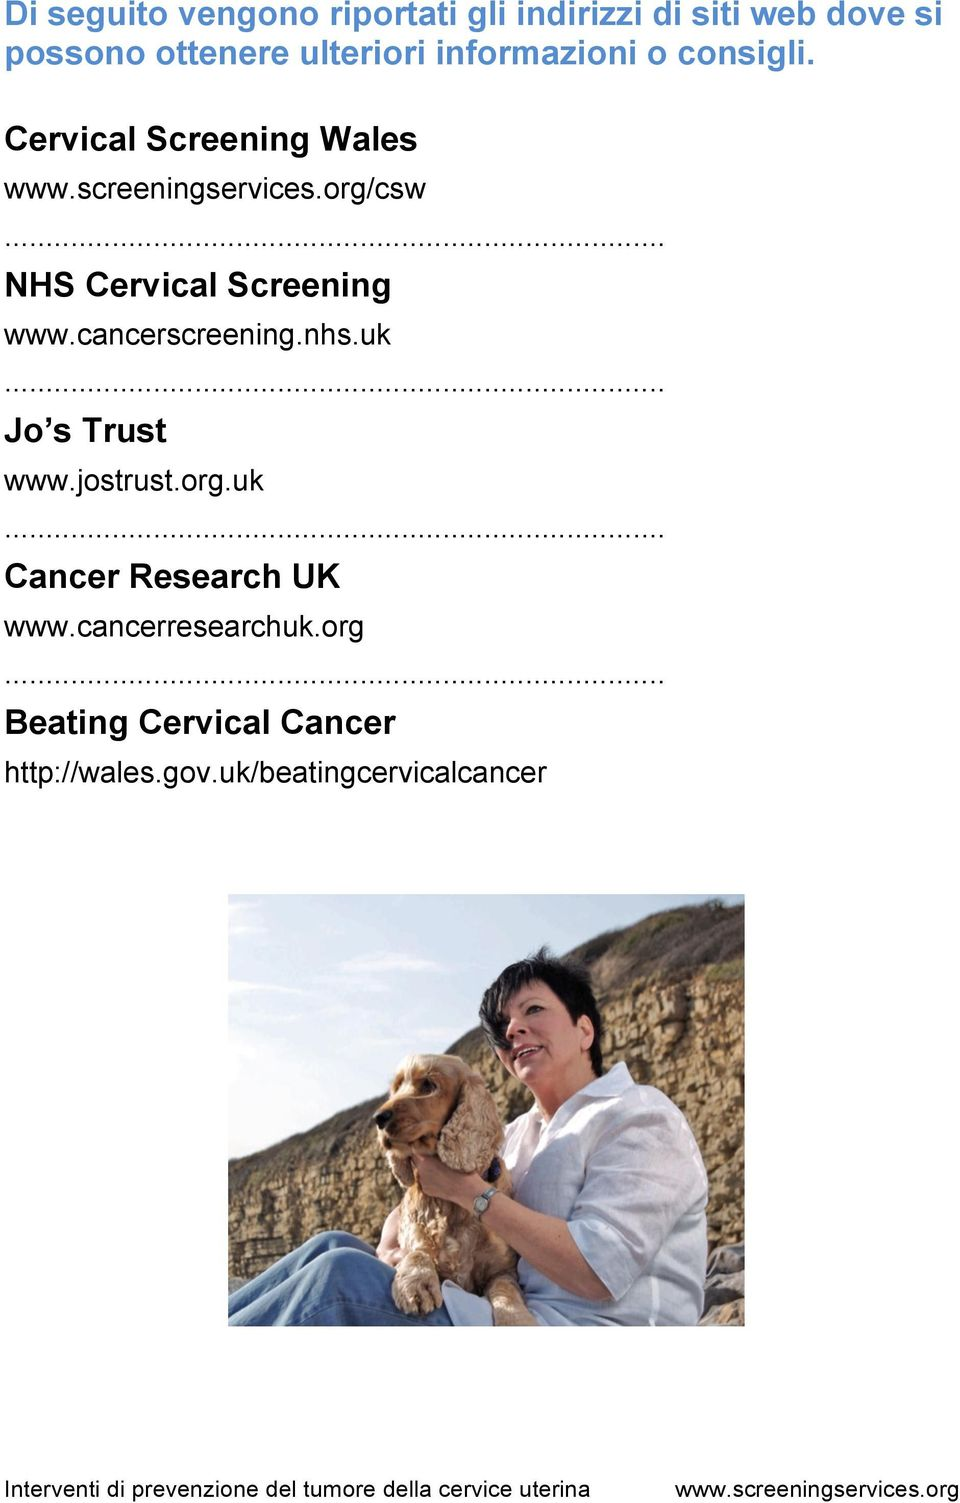 Cervical Screening Wales /csw NHS Cervical Screening www.cancerscreening.nhs.